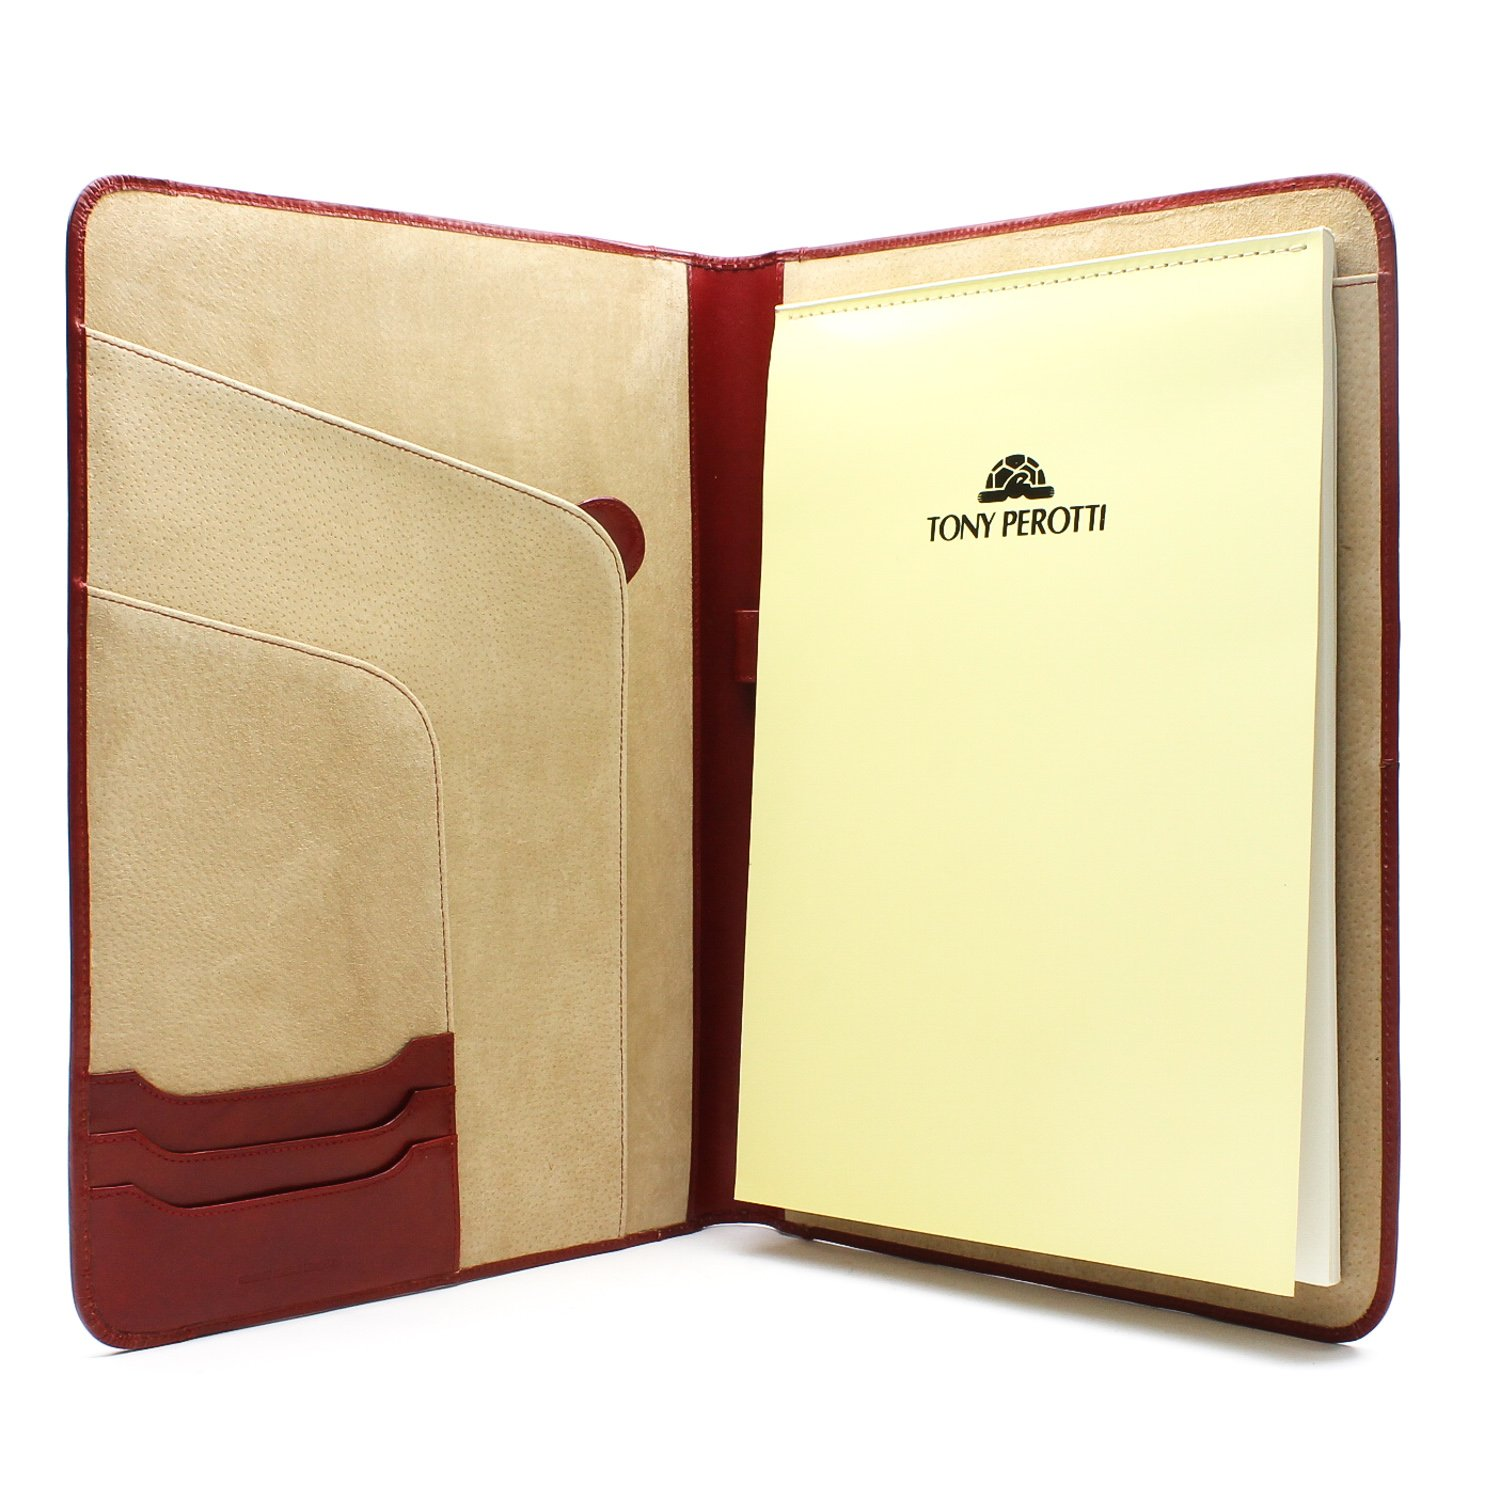 Tony Perotti Unisex Italian Bull Leather Express Business 8.5'' x 11'' Writing Padfolio in Red